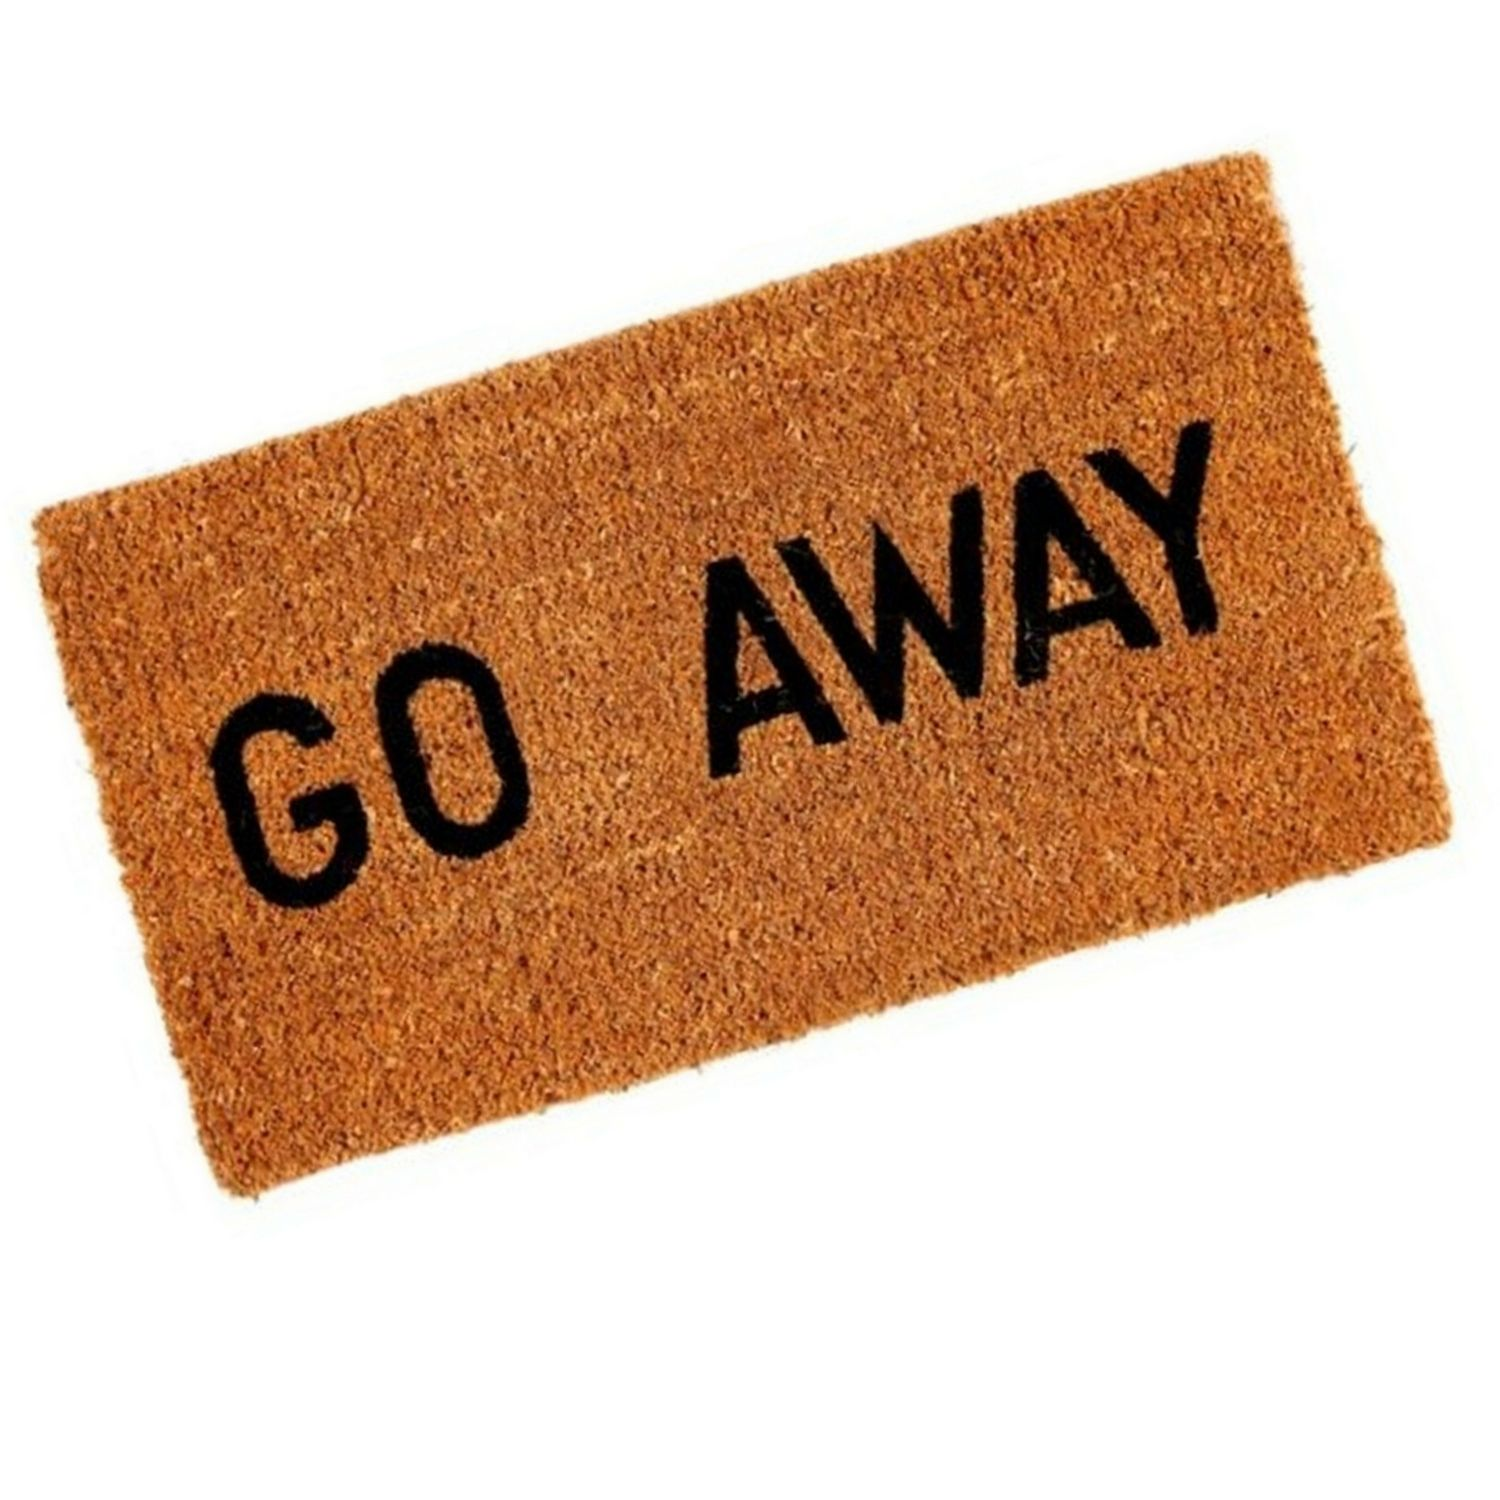 Go Away Doormat Awesome Stuff To Buy